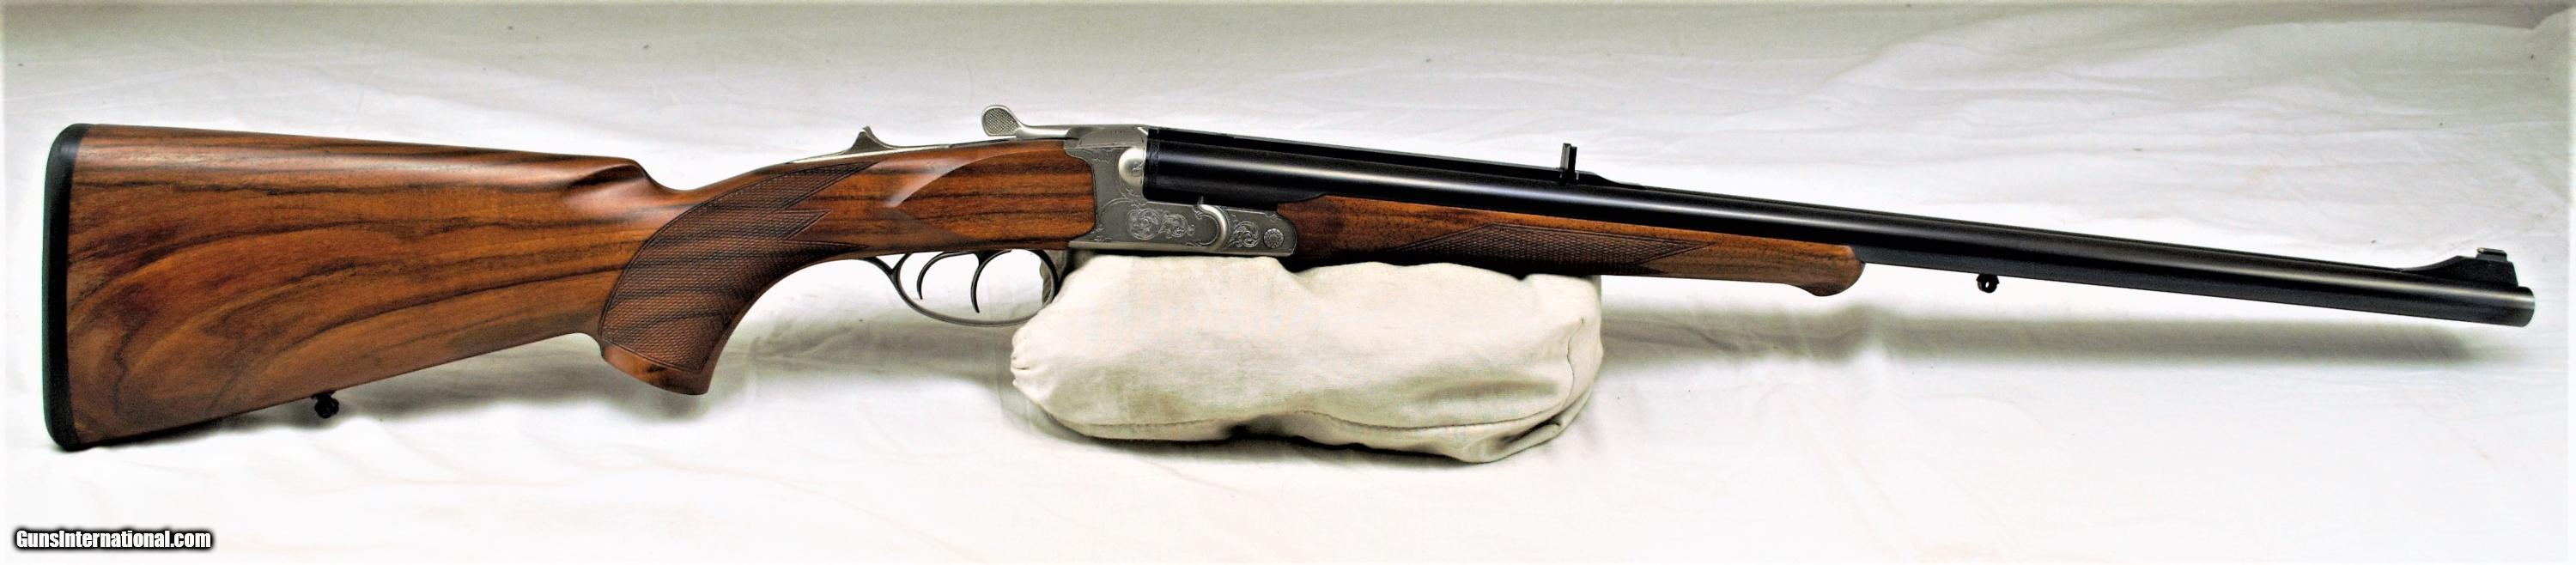 Petite double rifle — pic 12